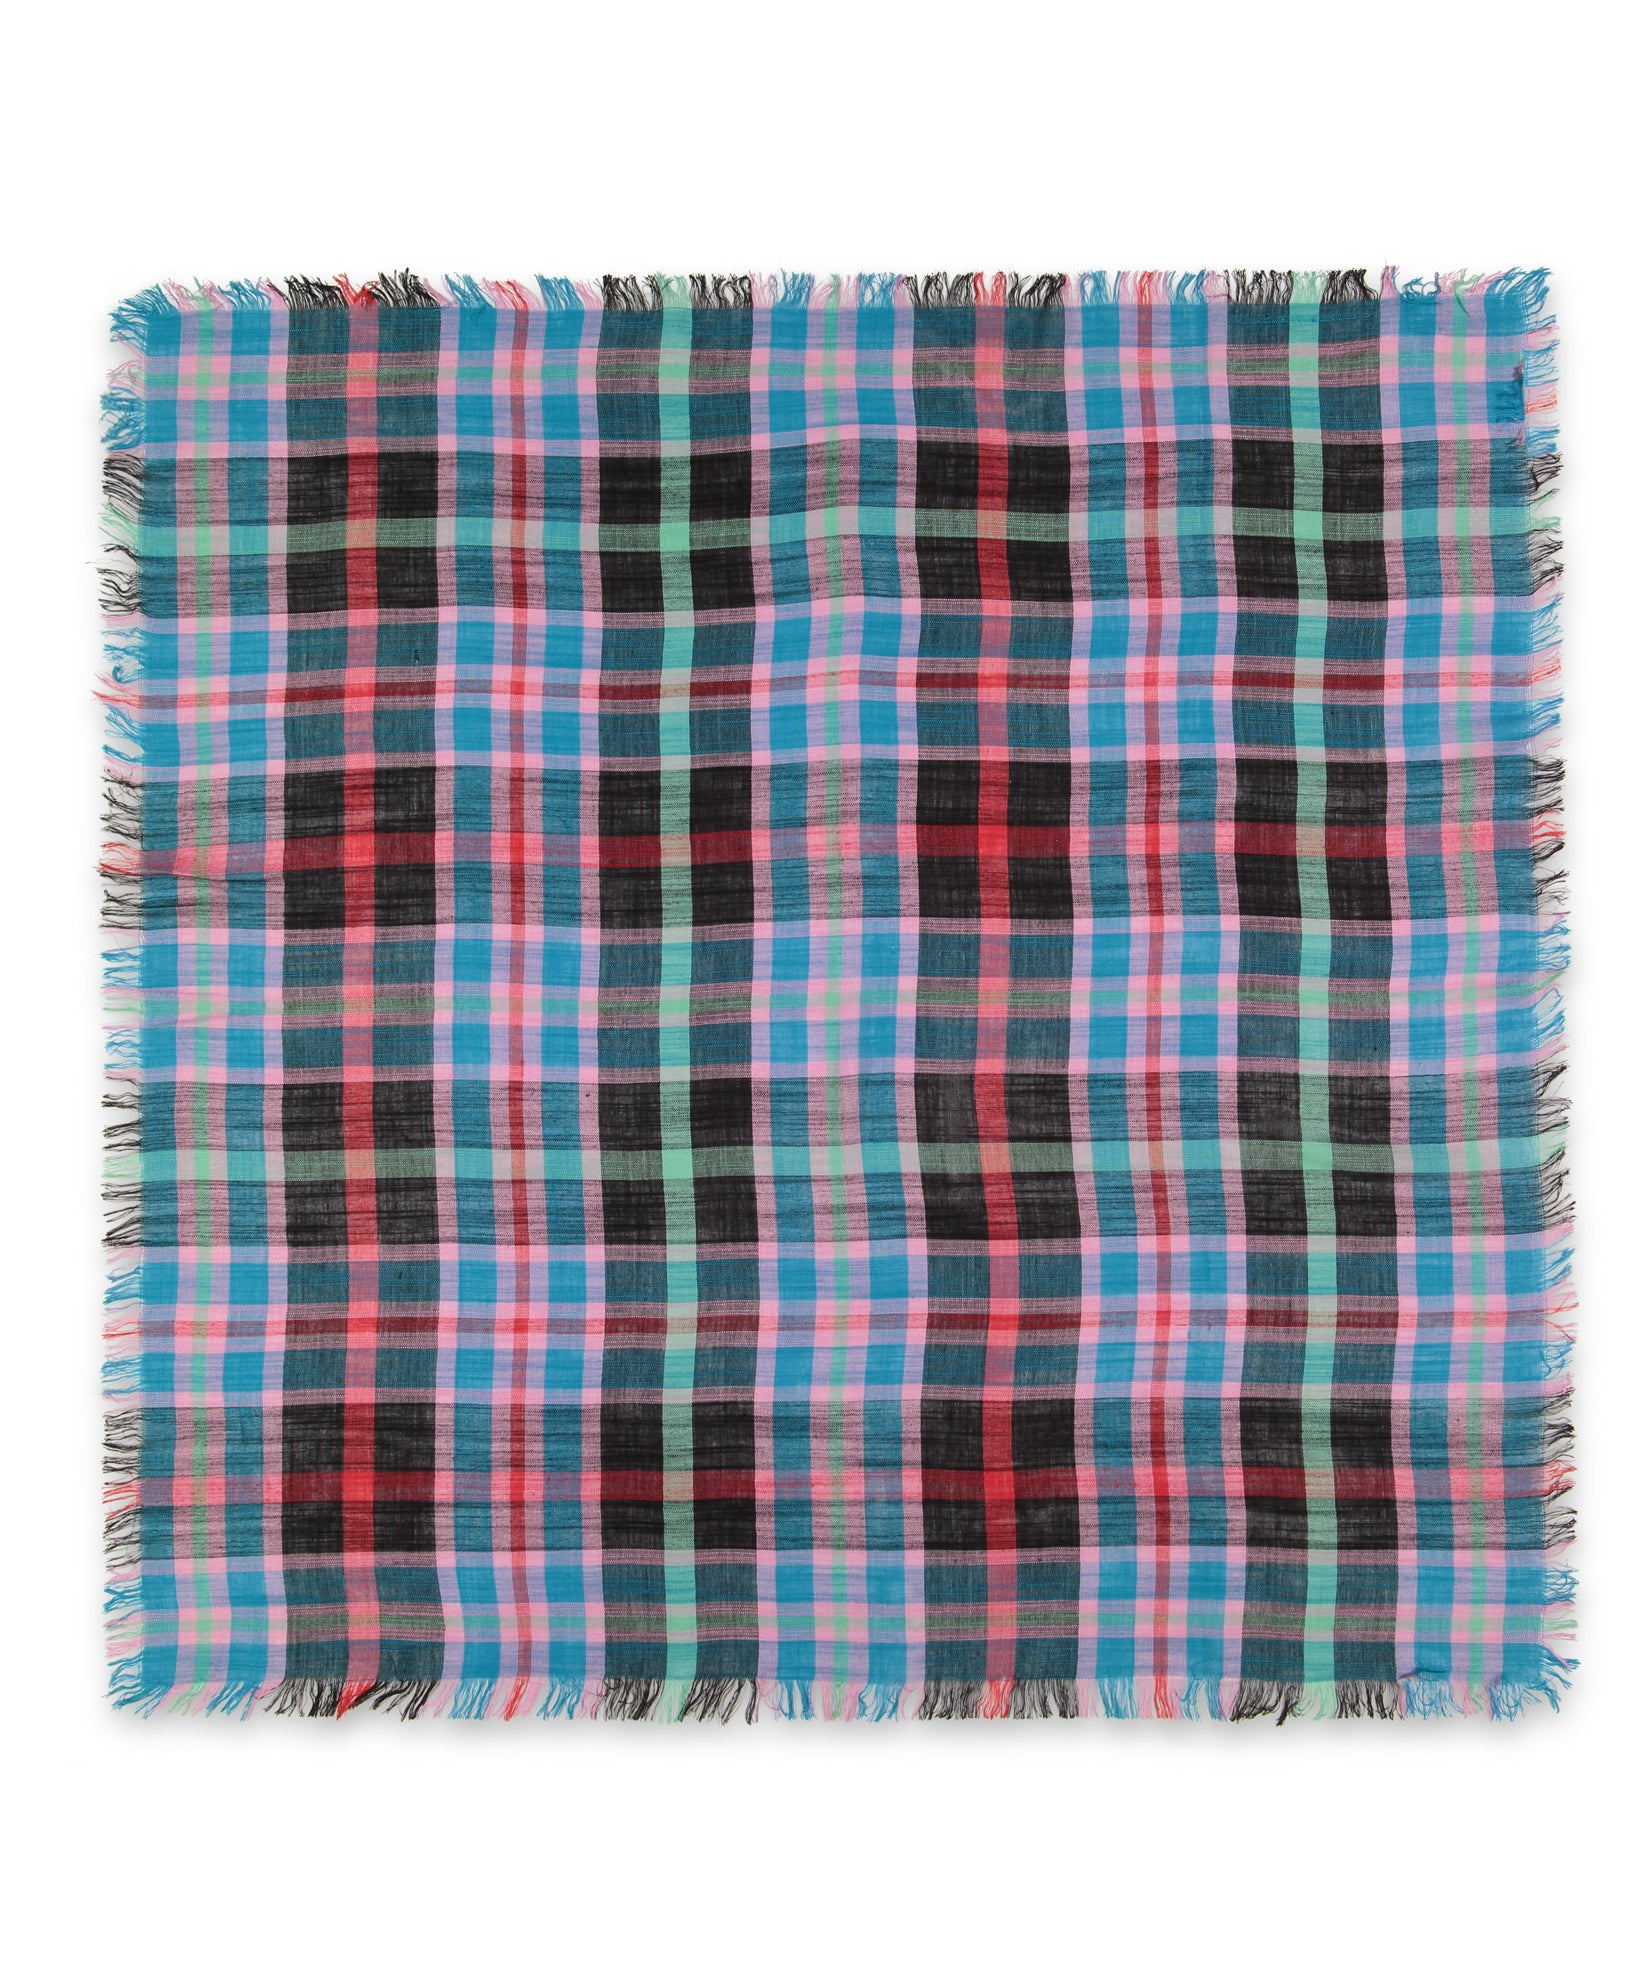 Multi - Goa Plaid Square